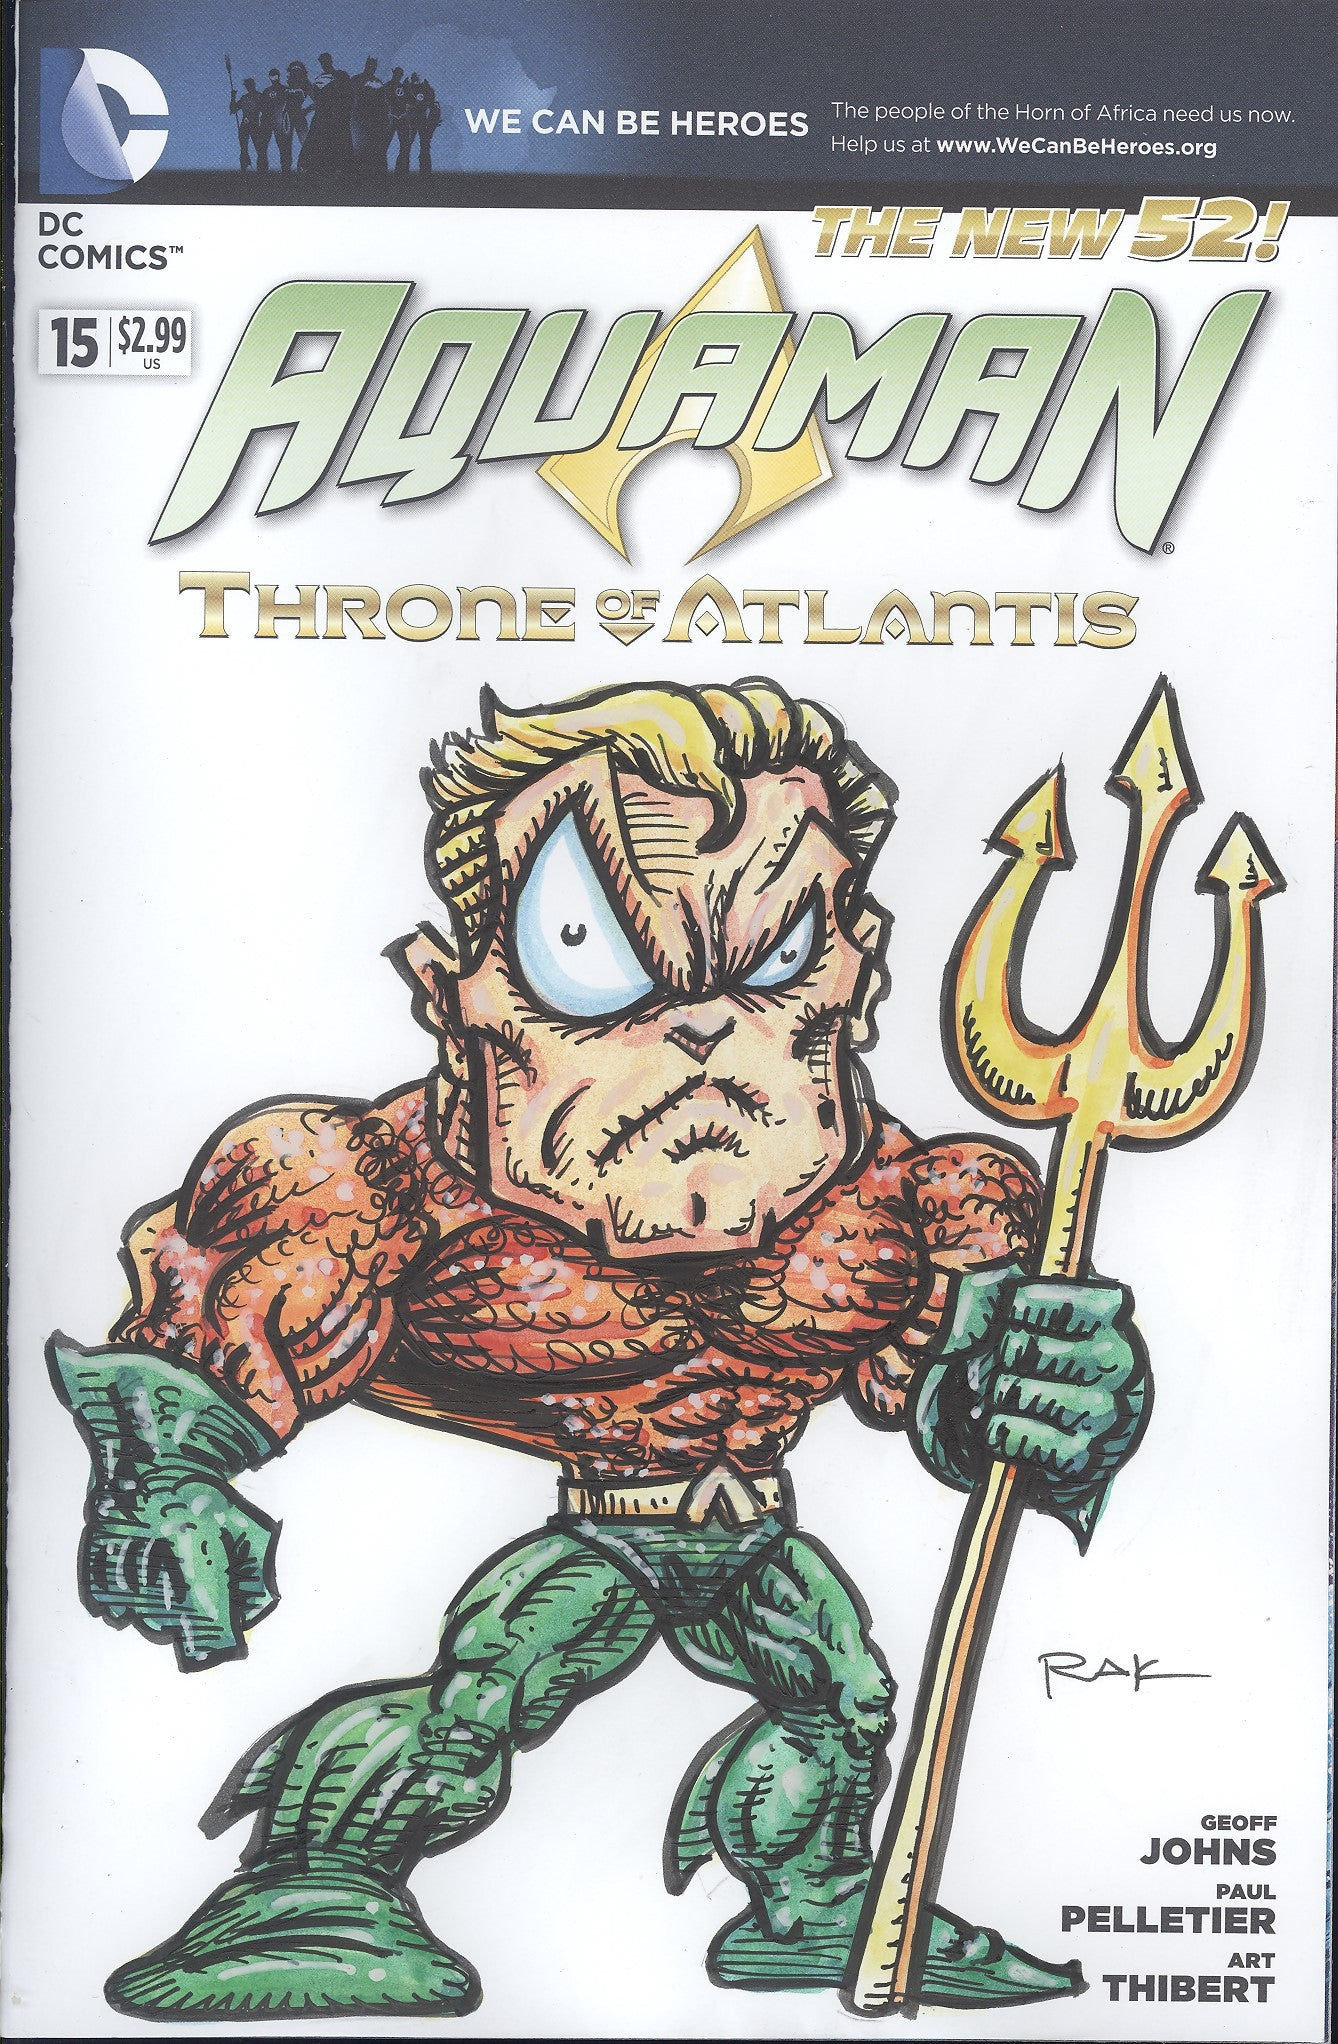 Aquaman #15 W/Original Art by RAK (Robert A Kraus)